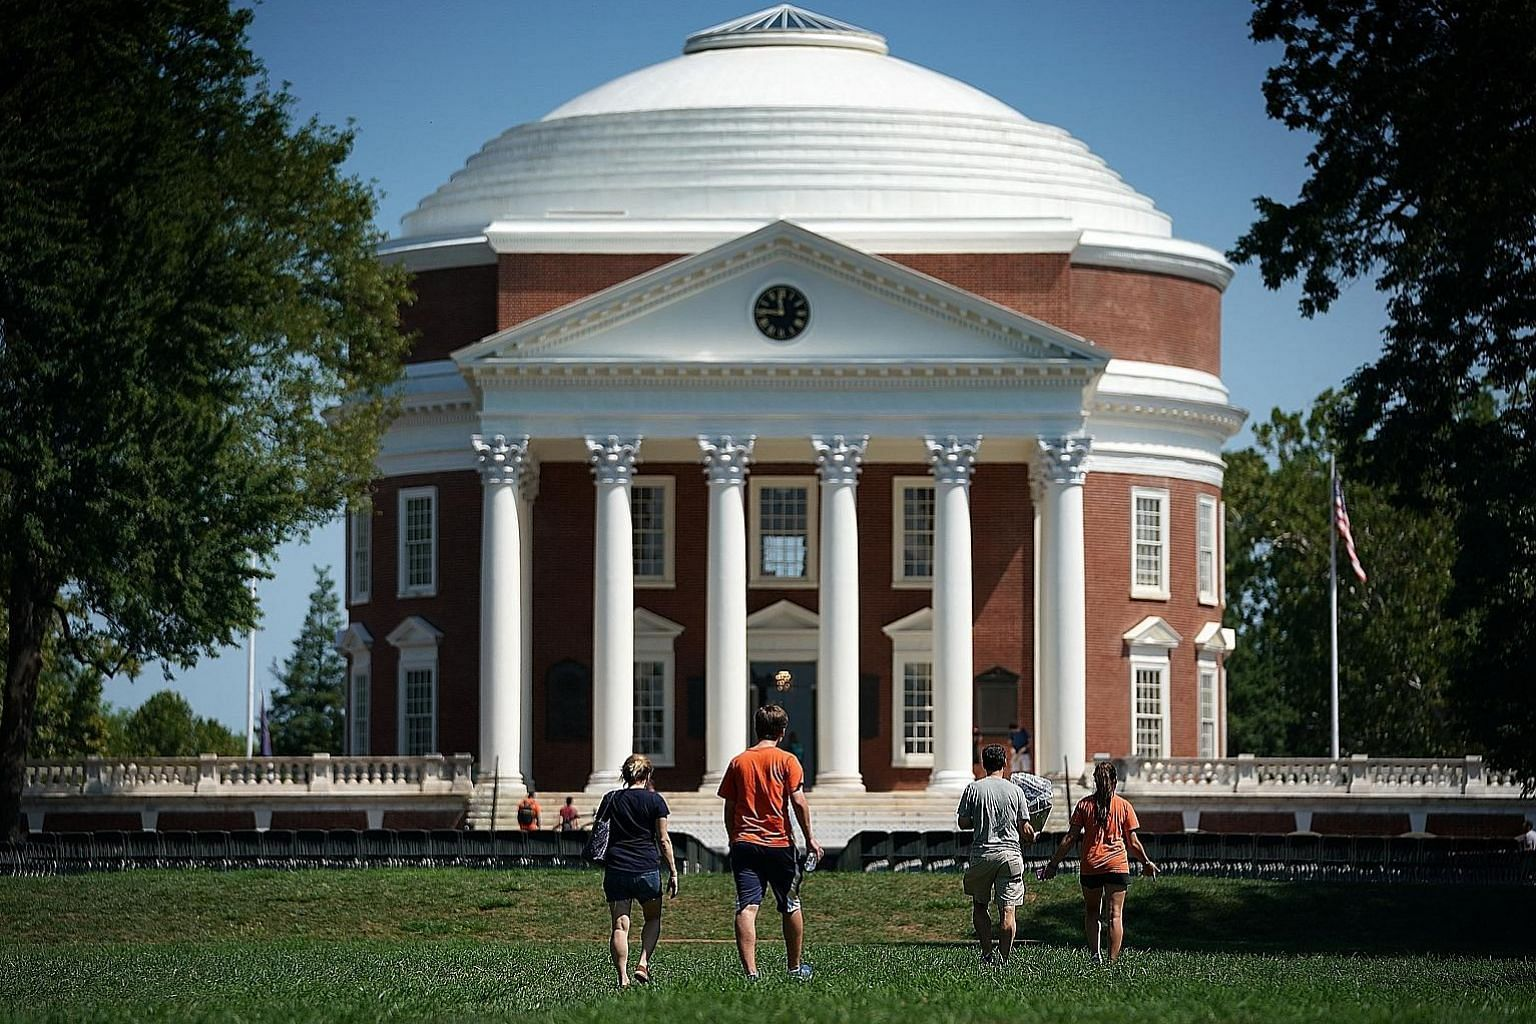 The University of Virginia's revered Lawn, behind which stands the Rotunda. On Aug 12, white supremacists descended on the university to march on the Lawn, and the writer, an alumnus, is proud of the townspeople and students who stood up to defend th